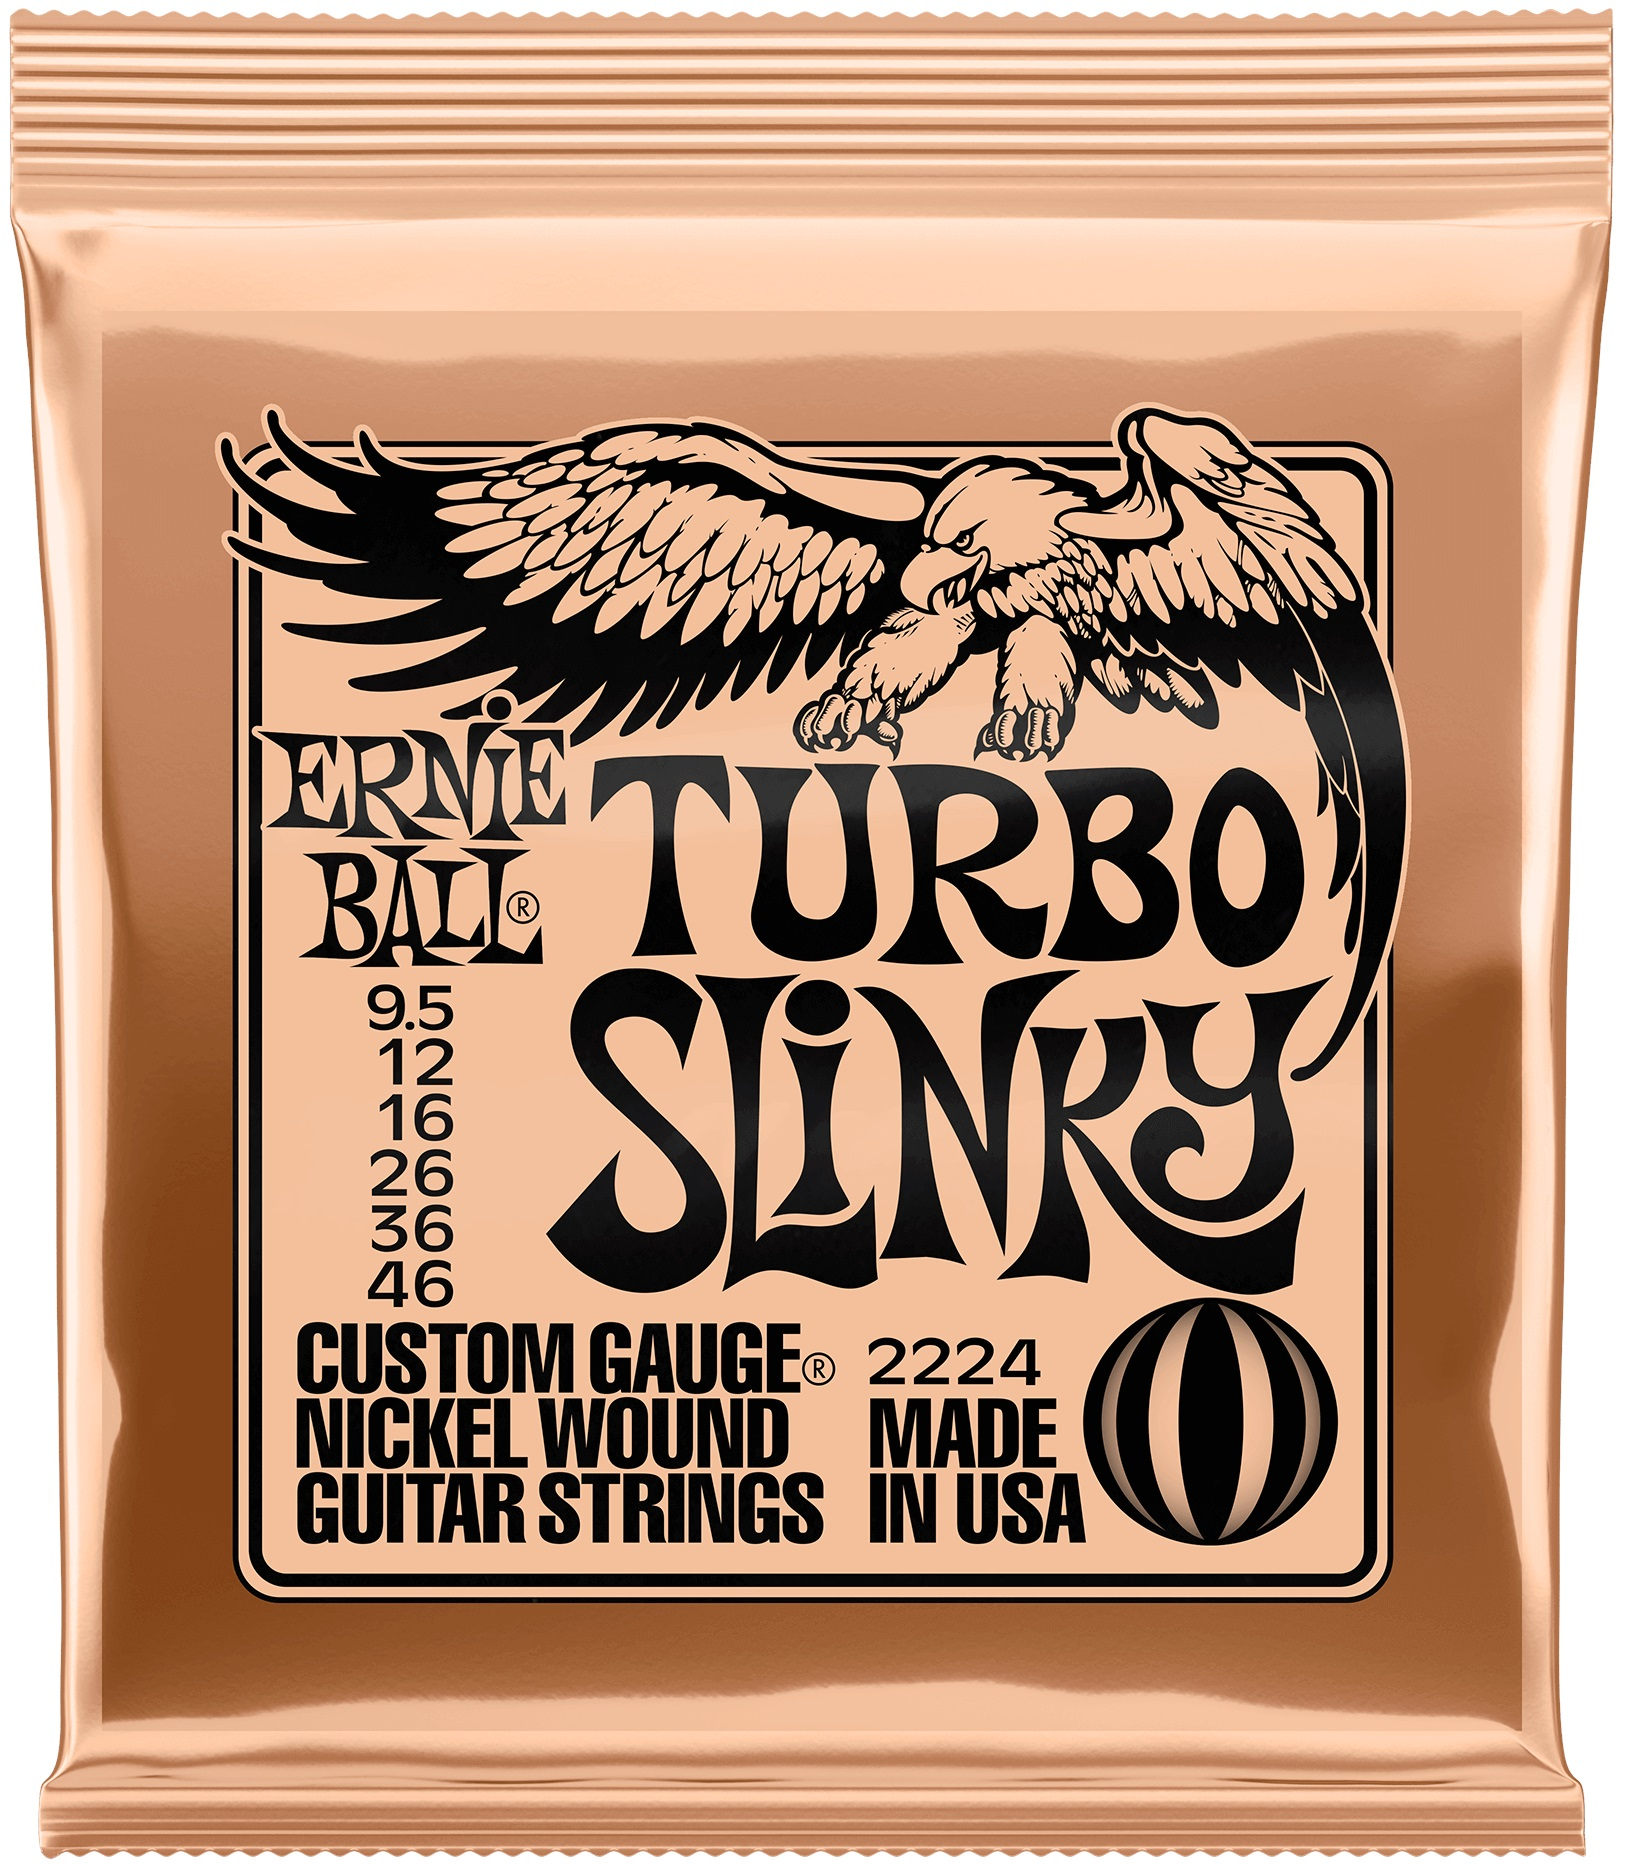 Ernie Ball Nickel Wound Turbo Slinky